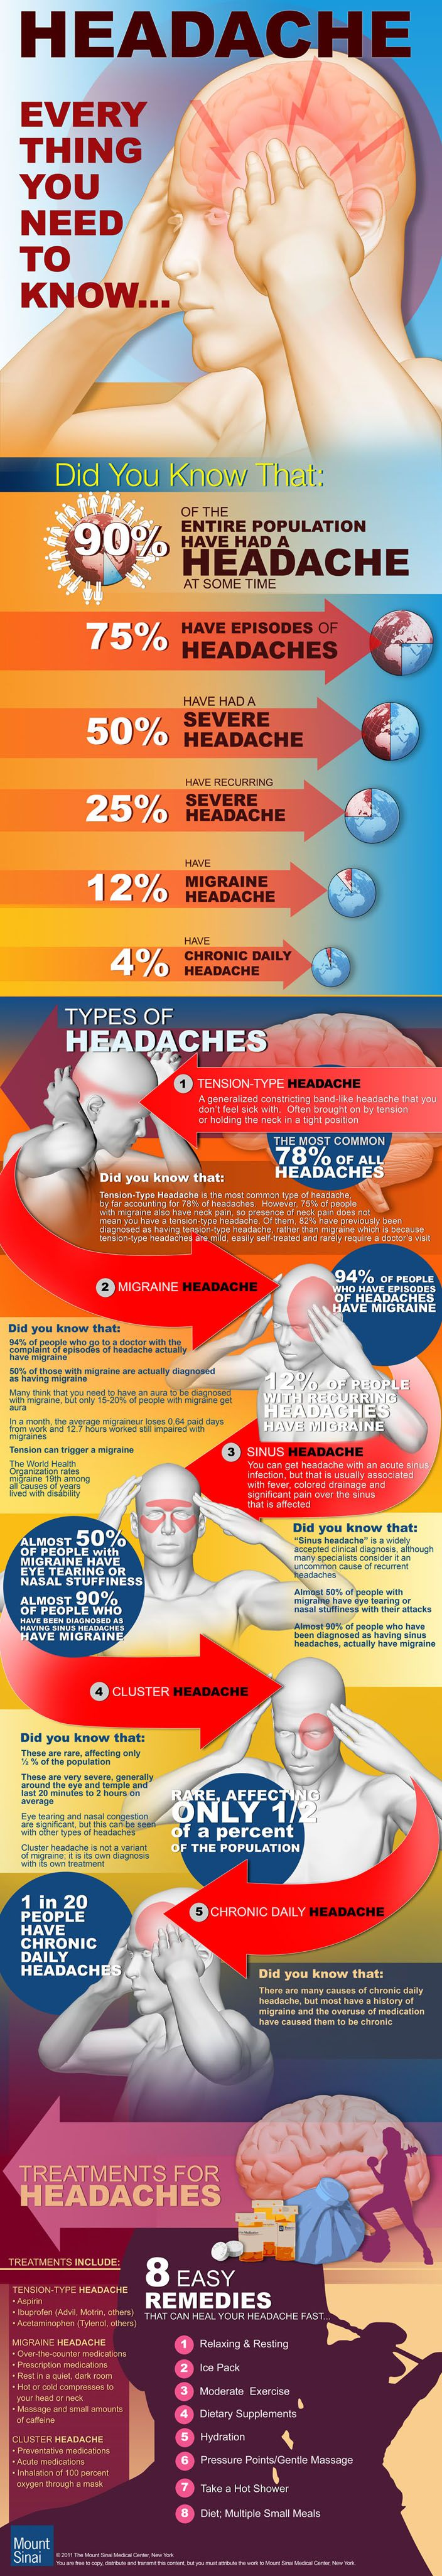 5 types of headaches and 8 easy remedies